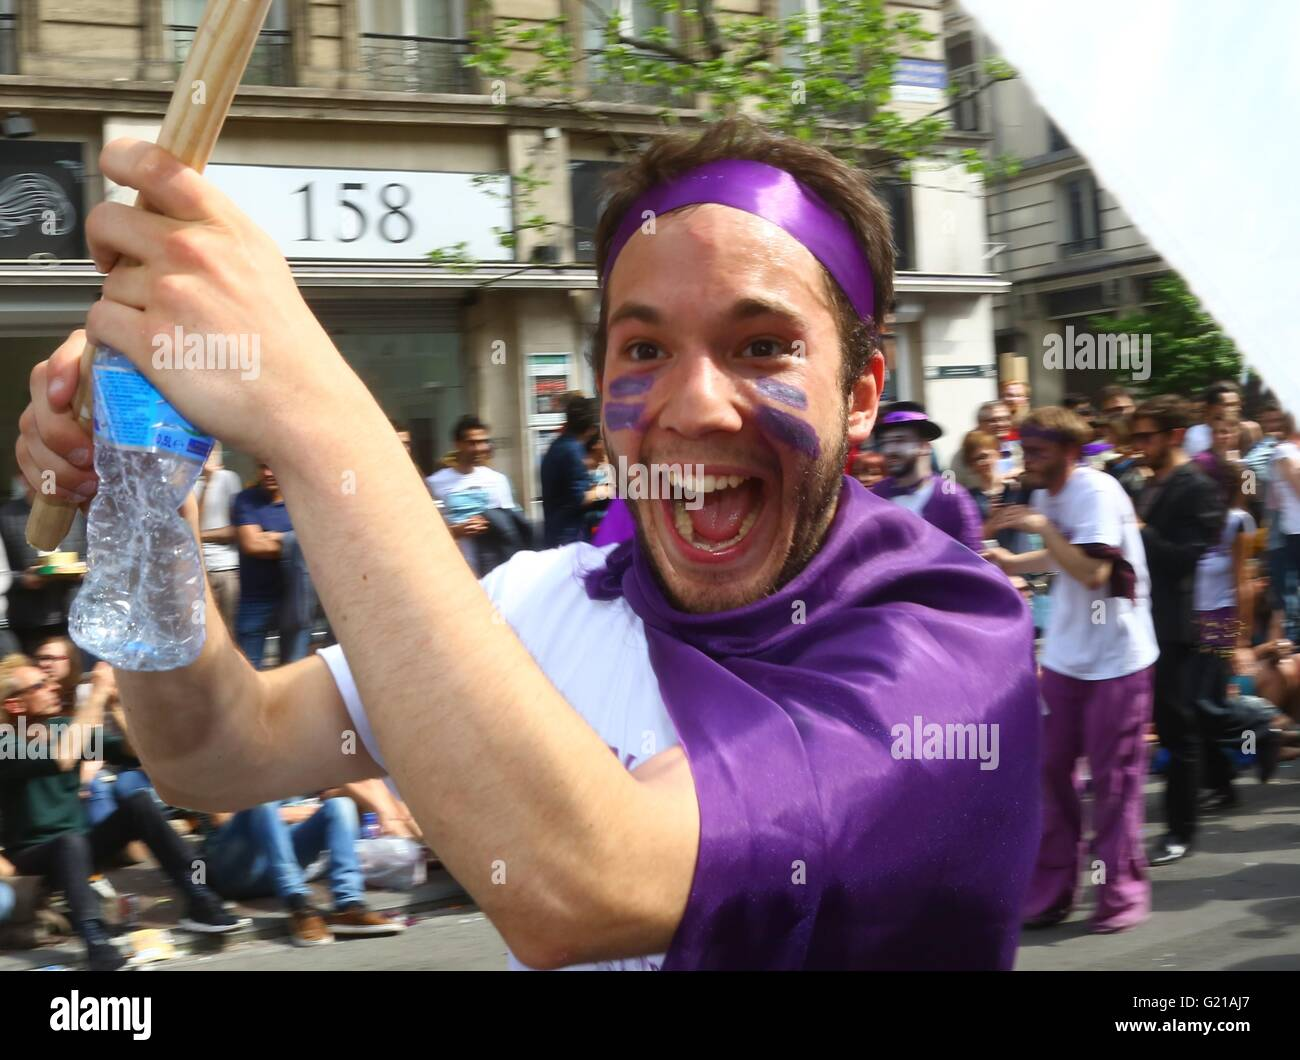 "Brussels. 21st May, 2016. A performer takes part in the biyearly Zinneke Parade under the theme ""Fragil"" in Brussels, Stock Photo"